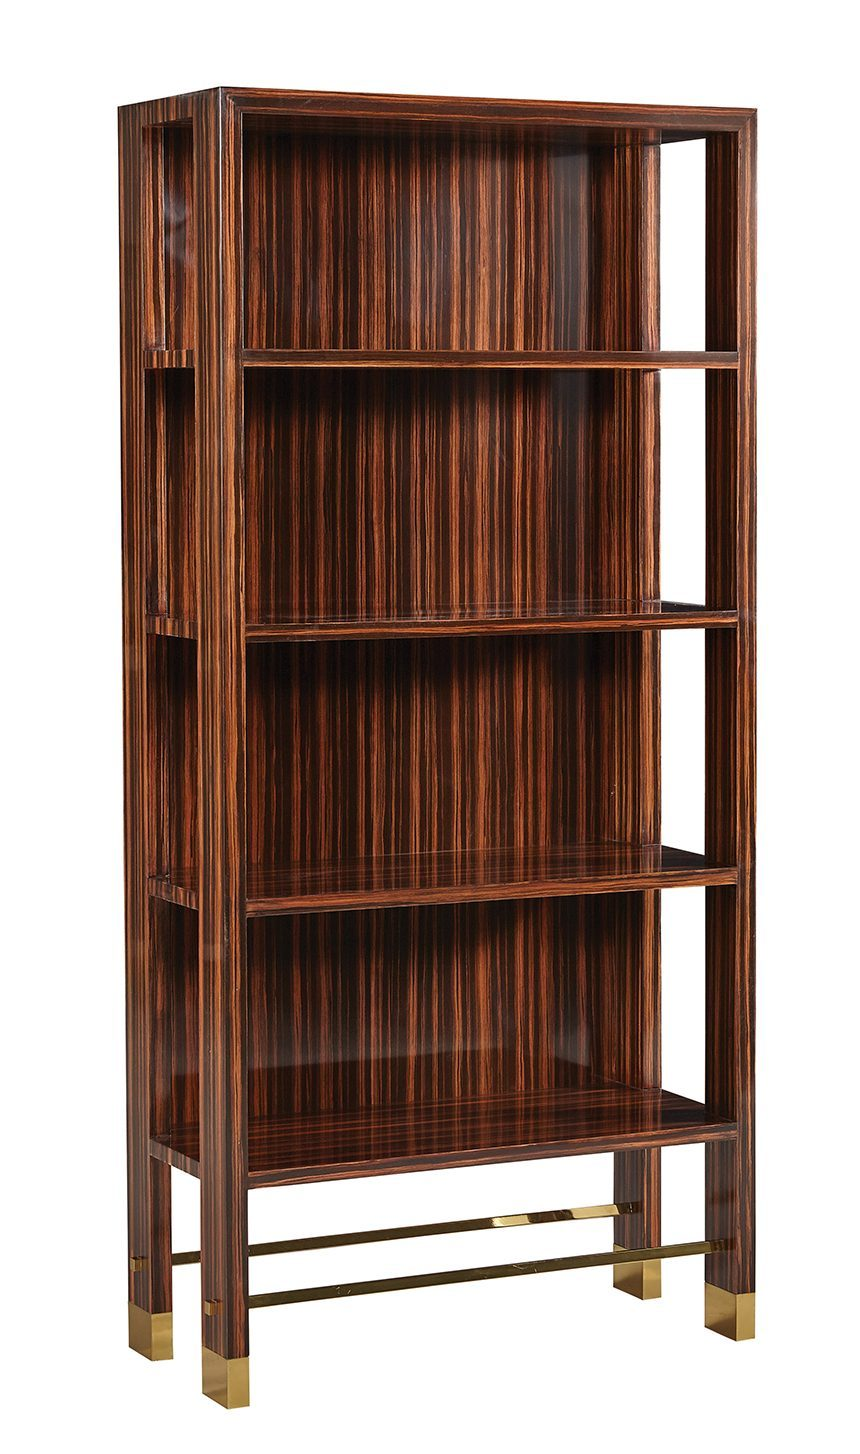 CARLTON BOOKCASE